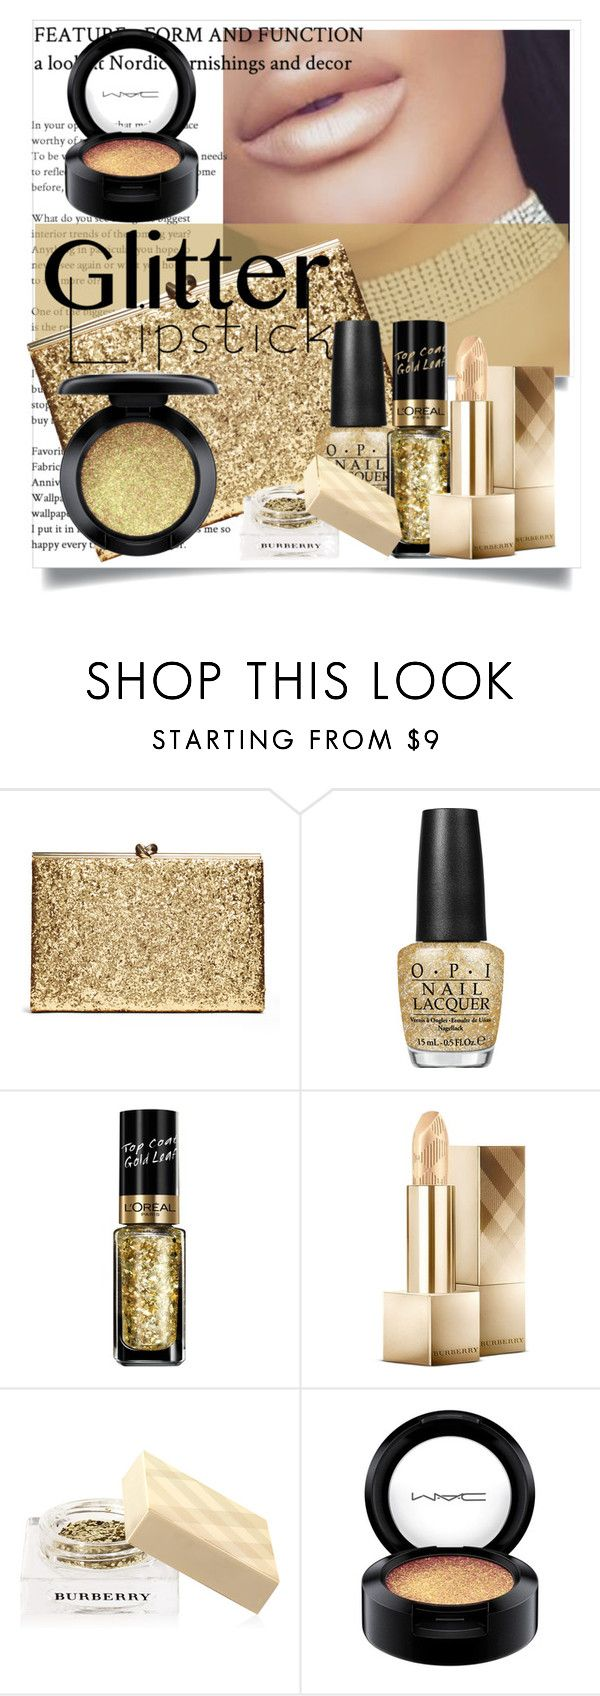 """""""Senza titolo #6179"""" by doradabrowska ❤ liked on Polyvore featuring beauty, OPI, L'Oréal Paris, Burberry, MAC Cosmetics and glitterlips"""